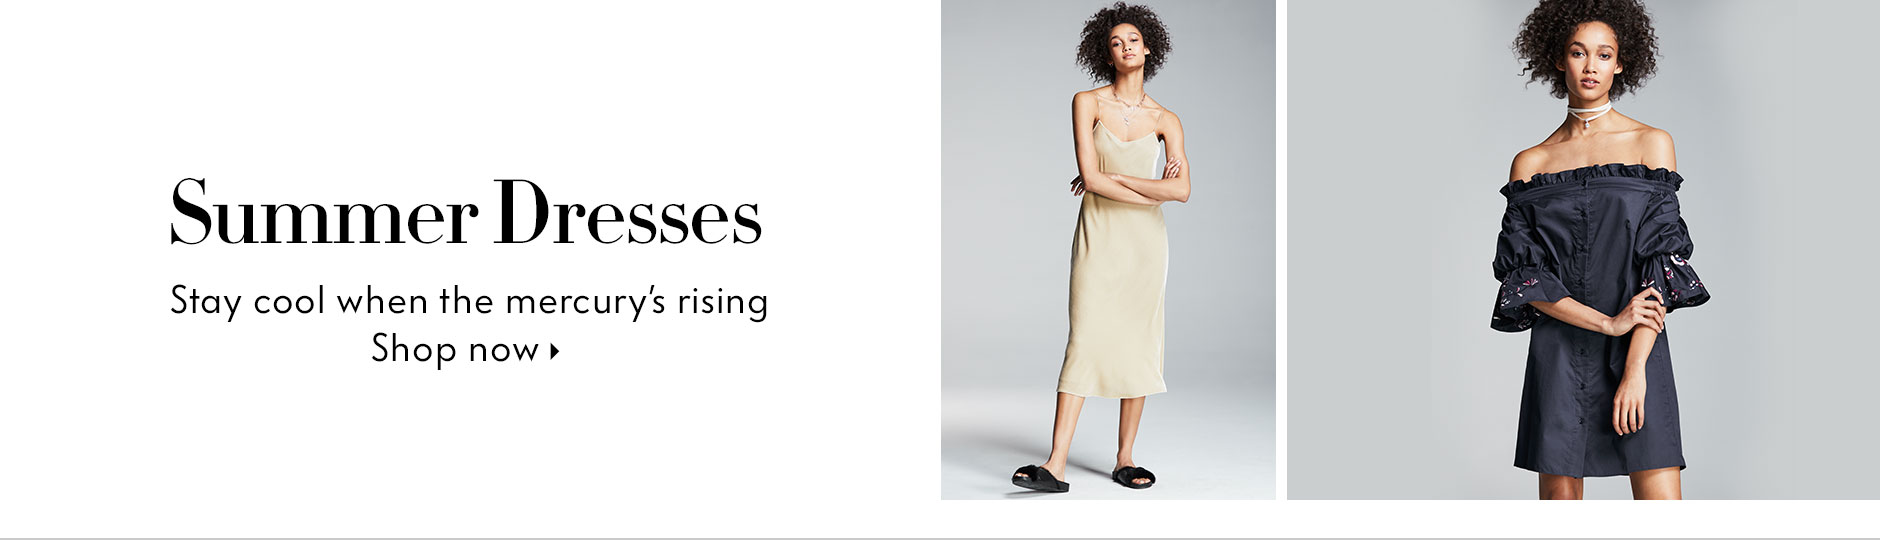 Summer Dresses - Stay cool when the mercury's rising